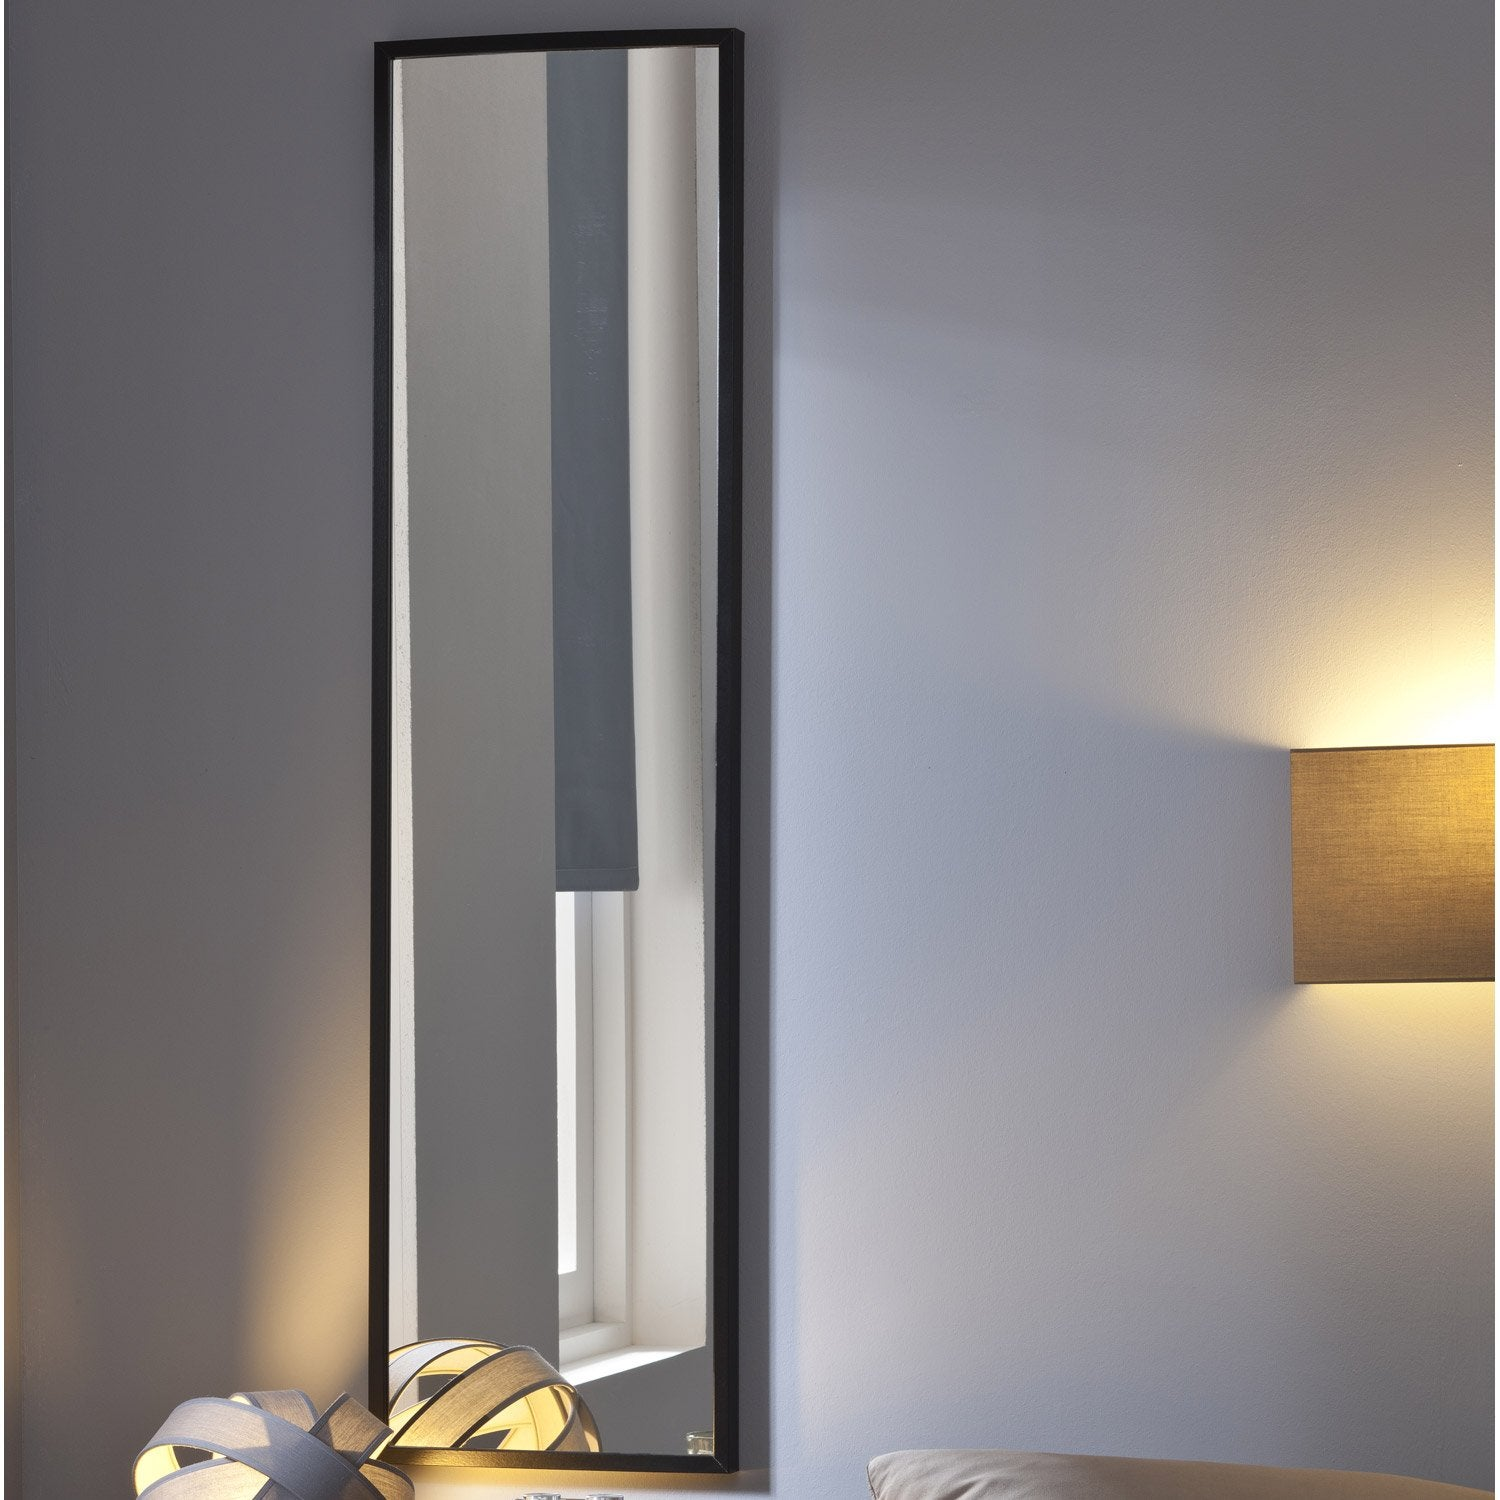 Miroir lario inspire noir x cm leroy merlin - Collection inspire leroy merlin ...